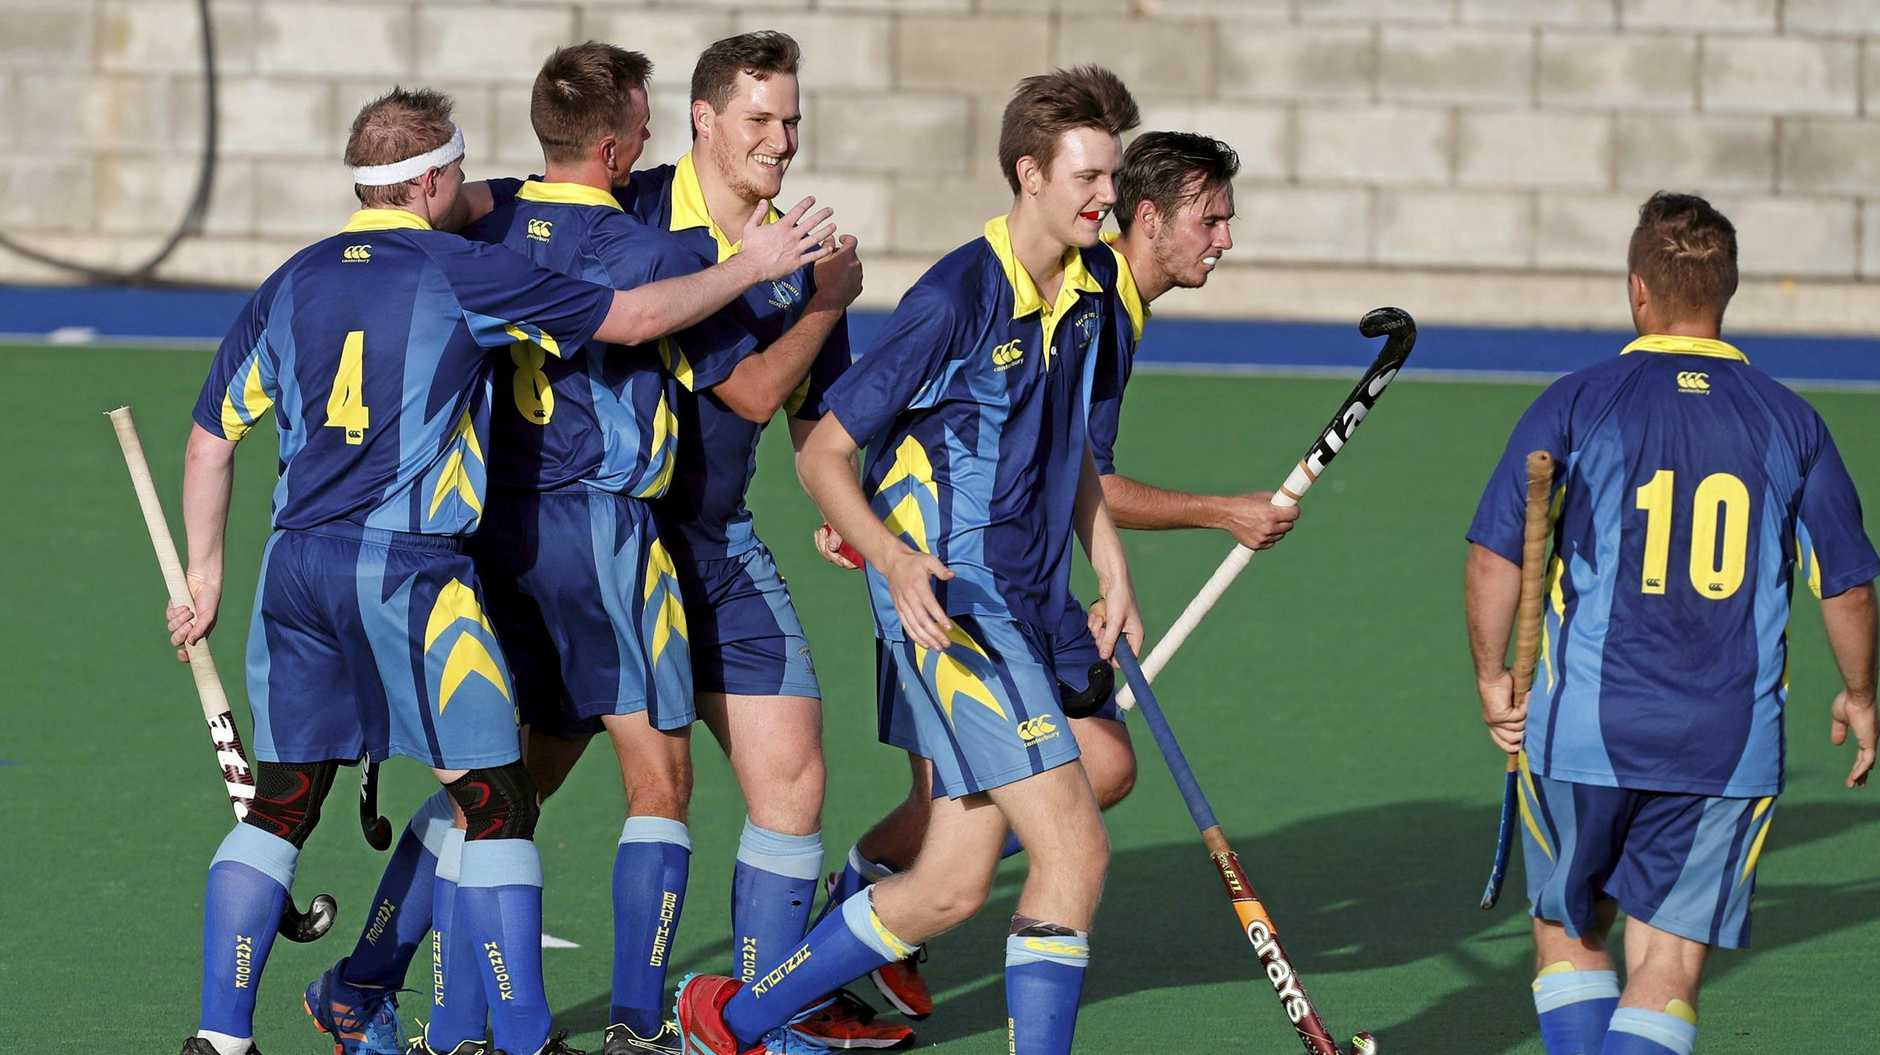 Hancocks Reserve Grade players celebrate one of the five goals they scored in Saturday's elimination final win over Bellbowrie at the Ipswich Hockey Complex.